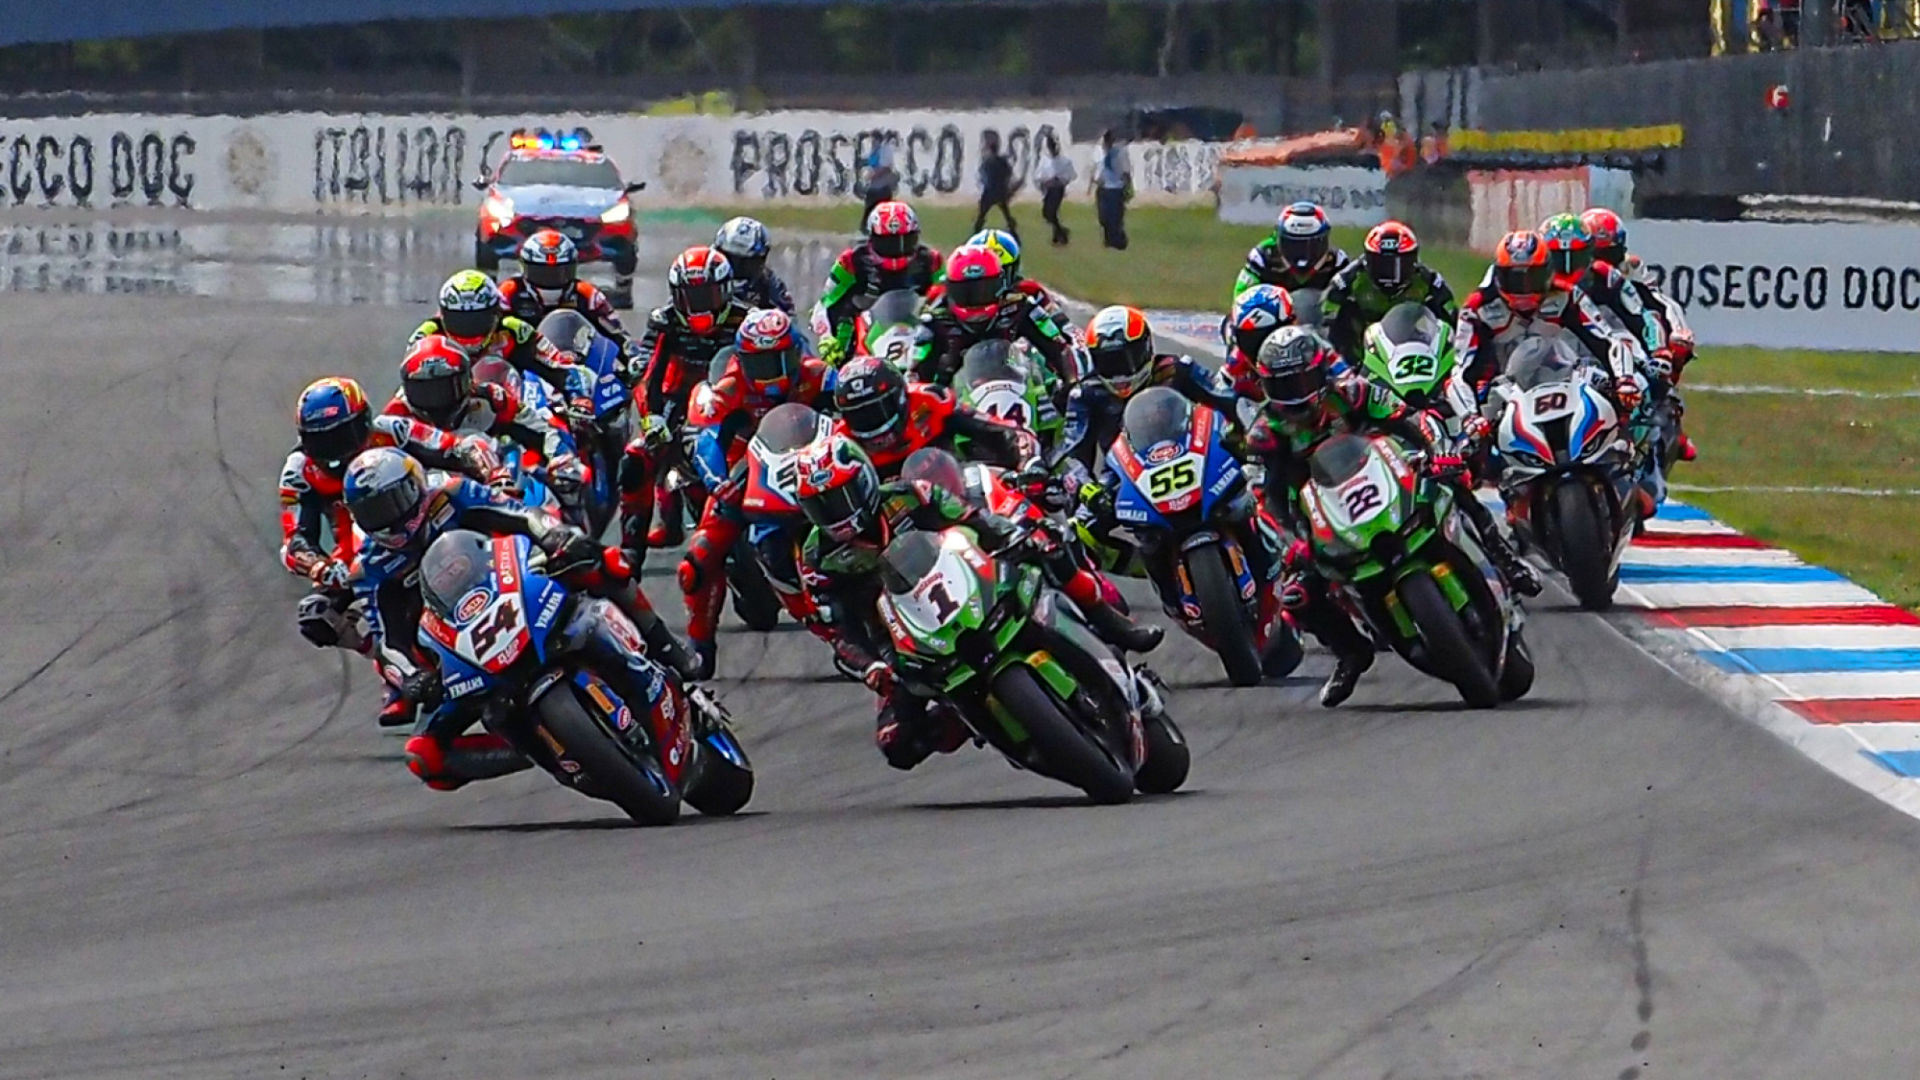 The World Superbike field is heading to Most, in the Czech Republic, a new venue for the World Championship. Photo courtesy Dorna.